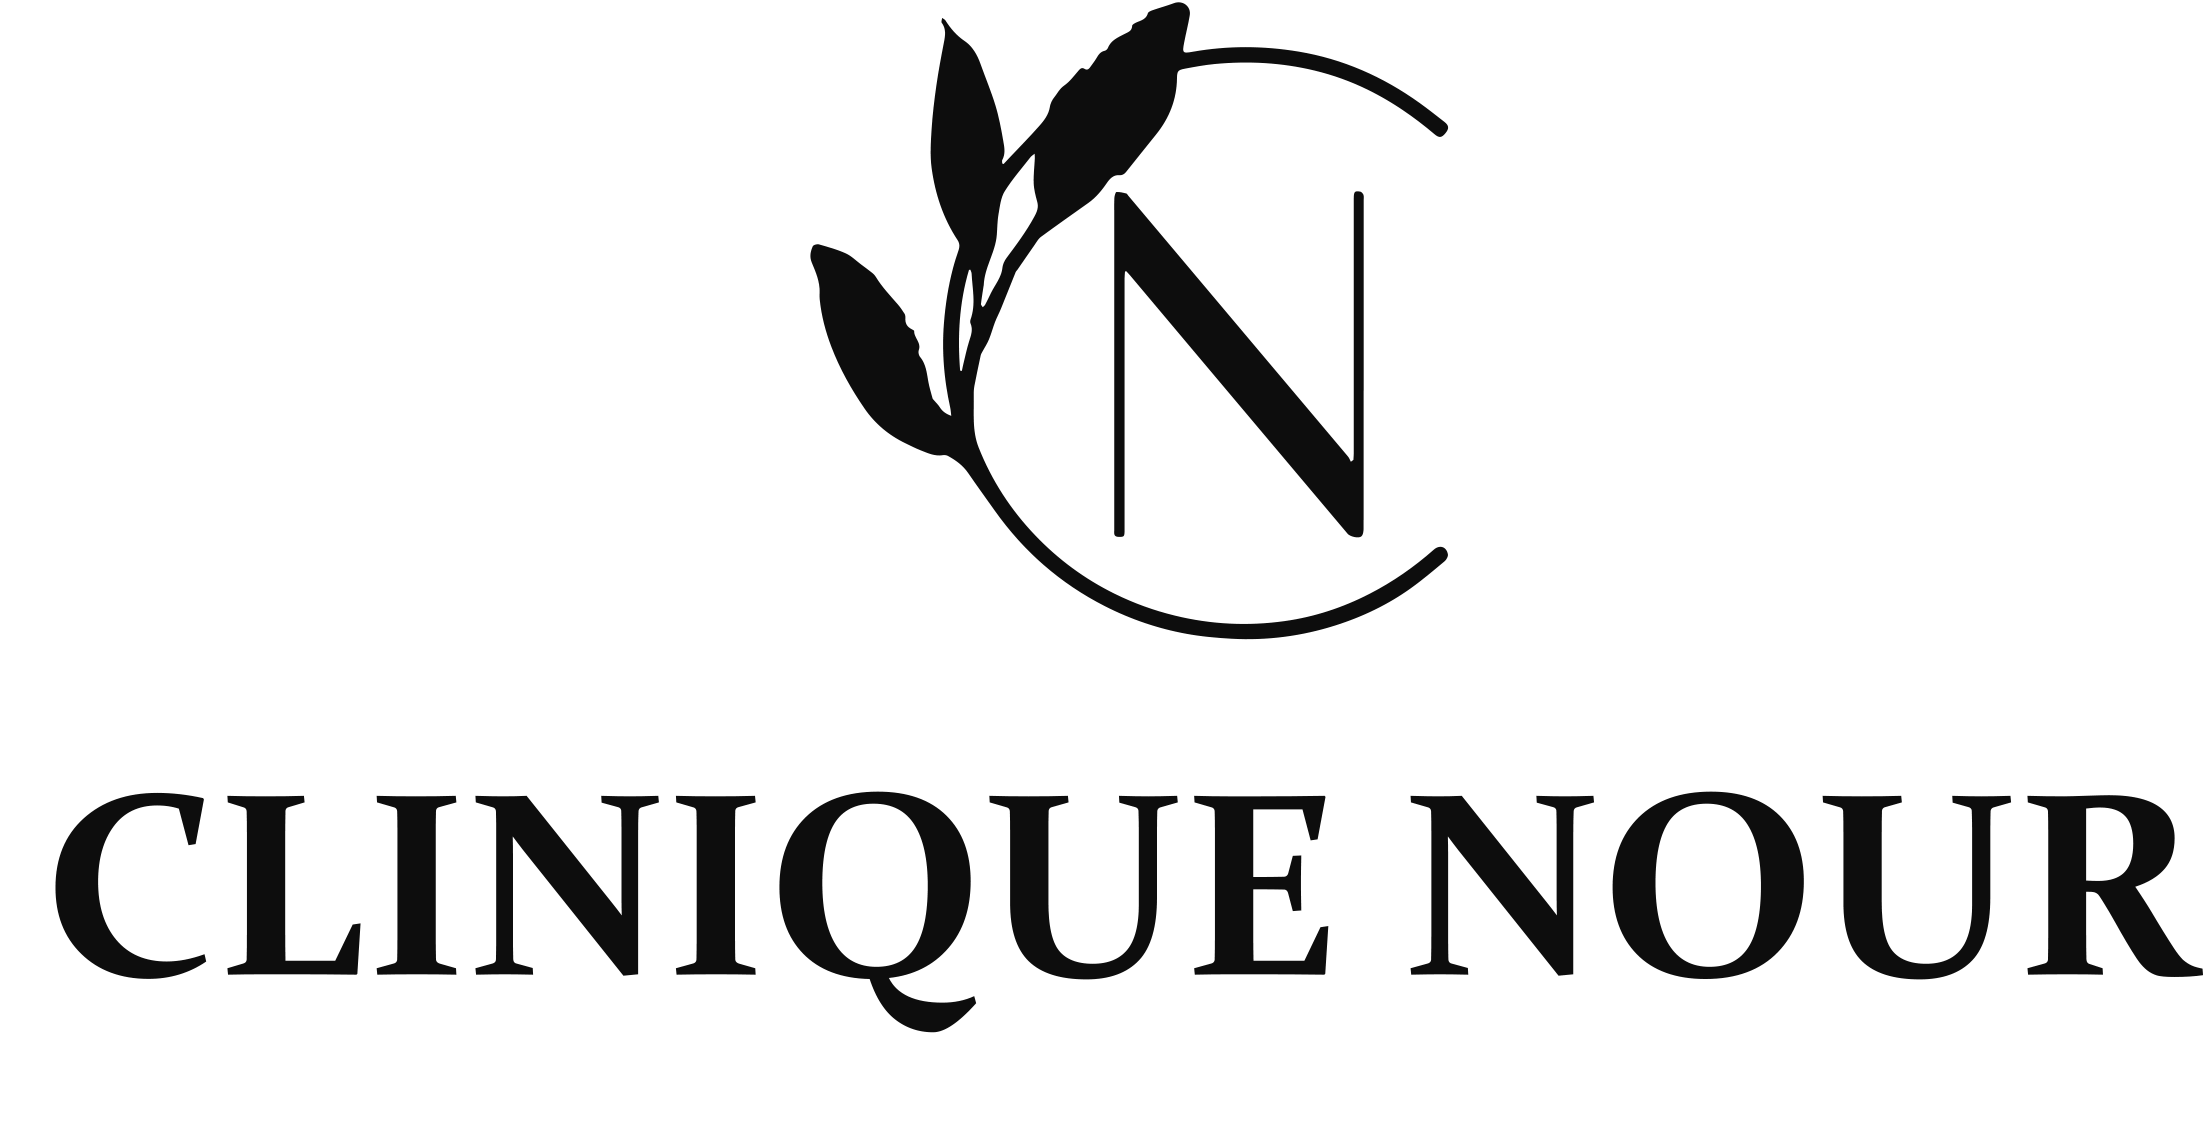 Clinique Nour Logo u bagg.png